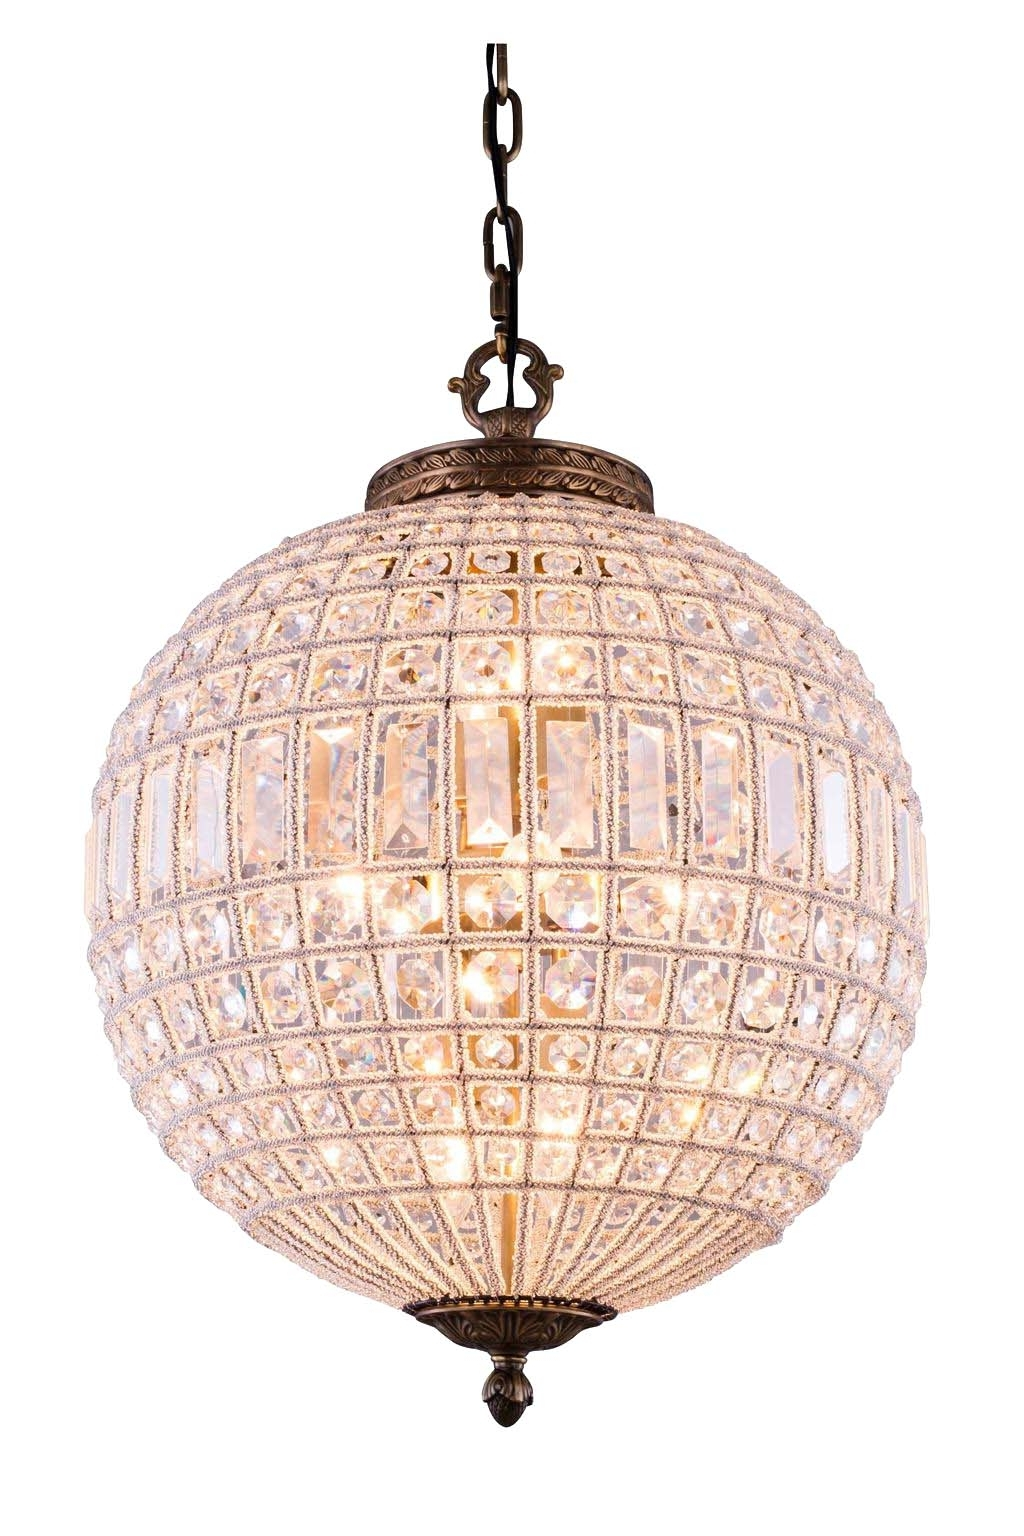 Well Known Globe Chandeliers Regarding Chandeliers Design : Magnificent Crystal Globe Chandelier Lucienne (View 18 of 20)